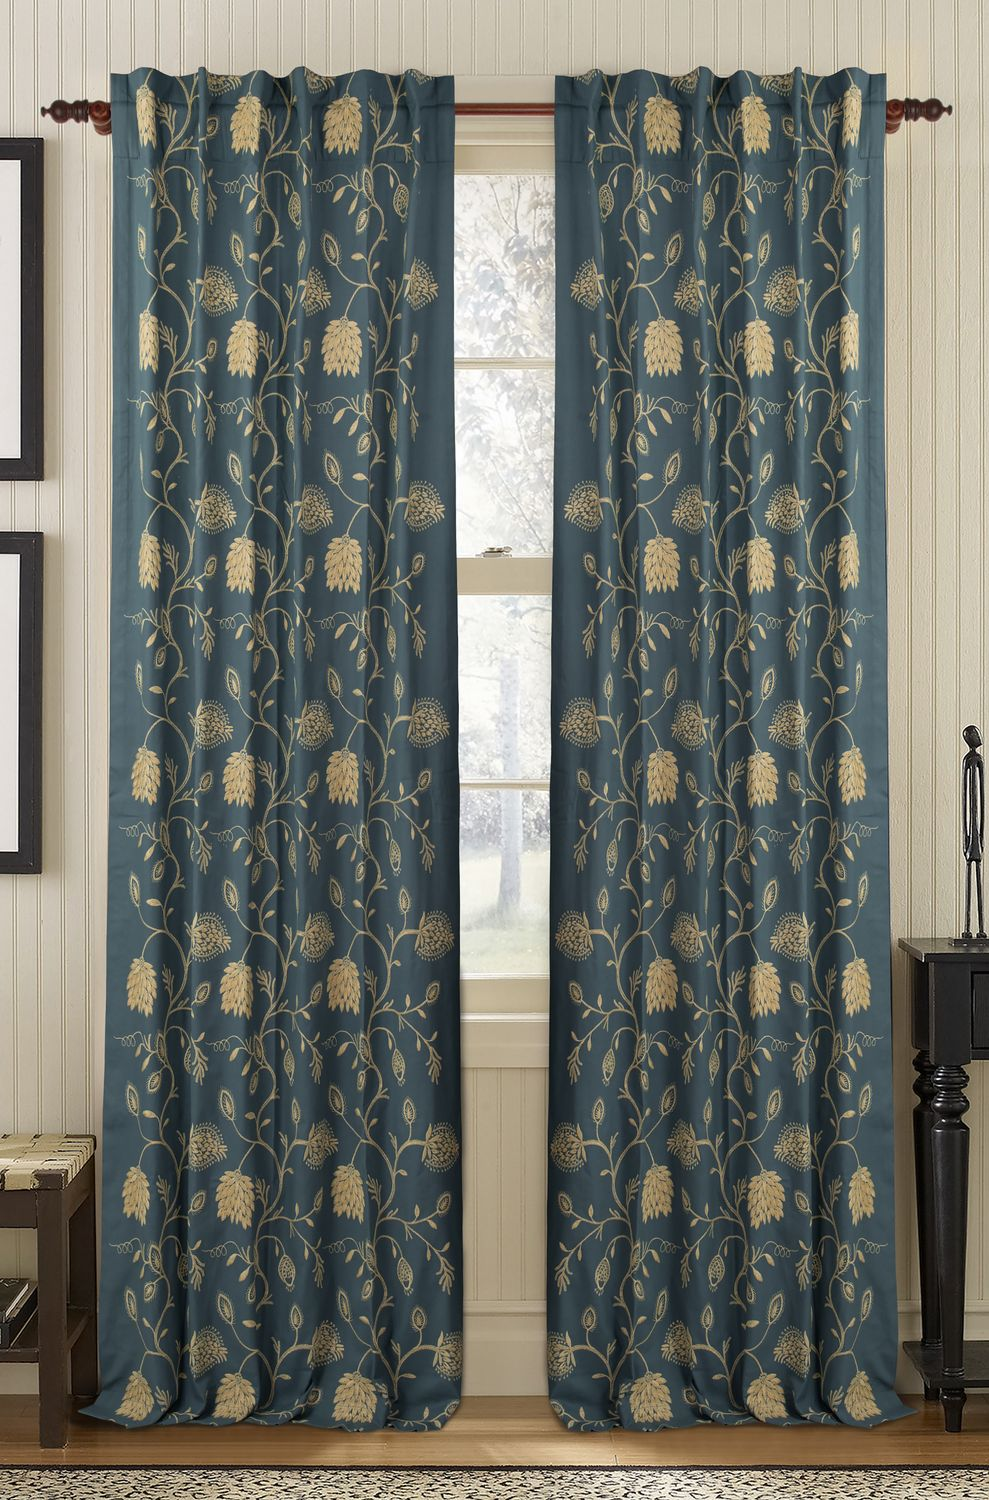 clean has room add and marissa drape inviting your pin features drapes to darkening panel three privacy is available the space curtain panels patterns in